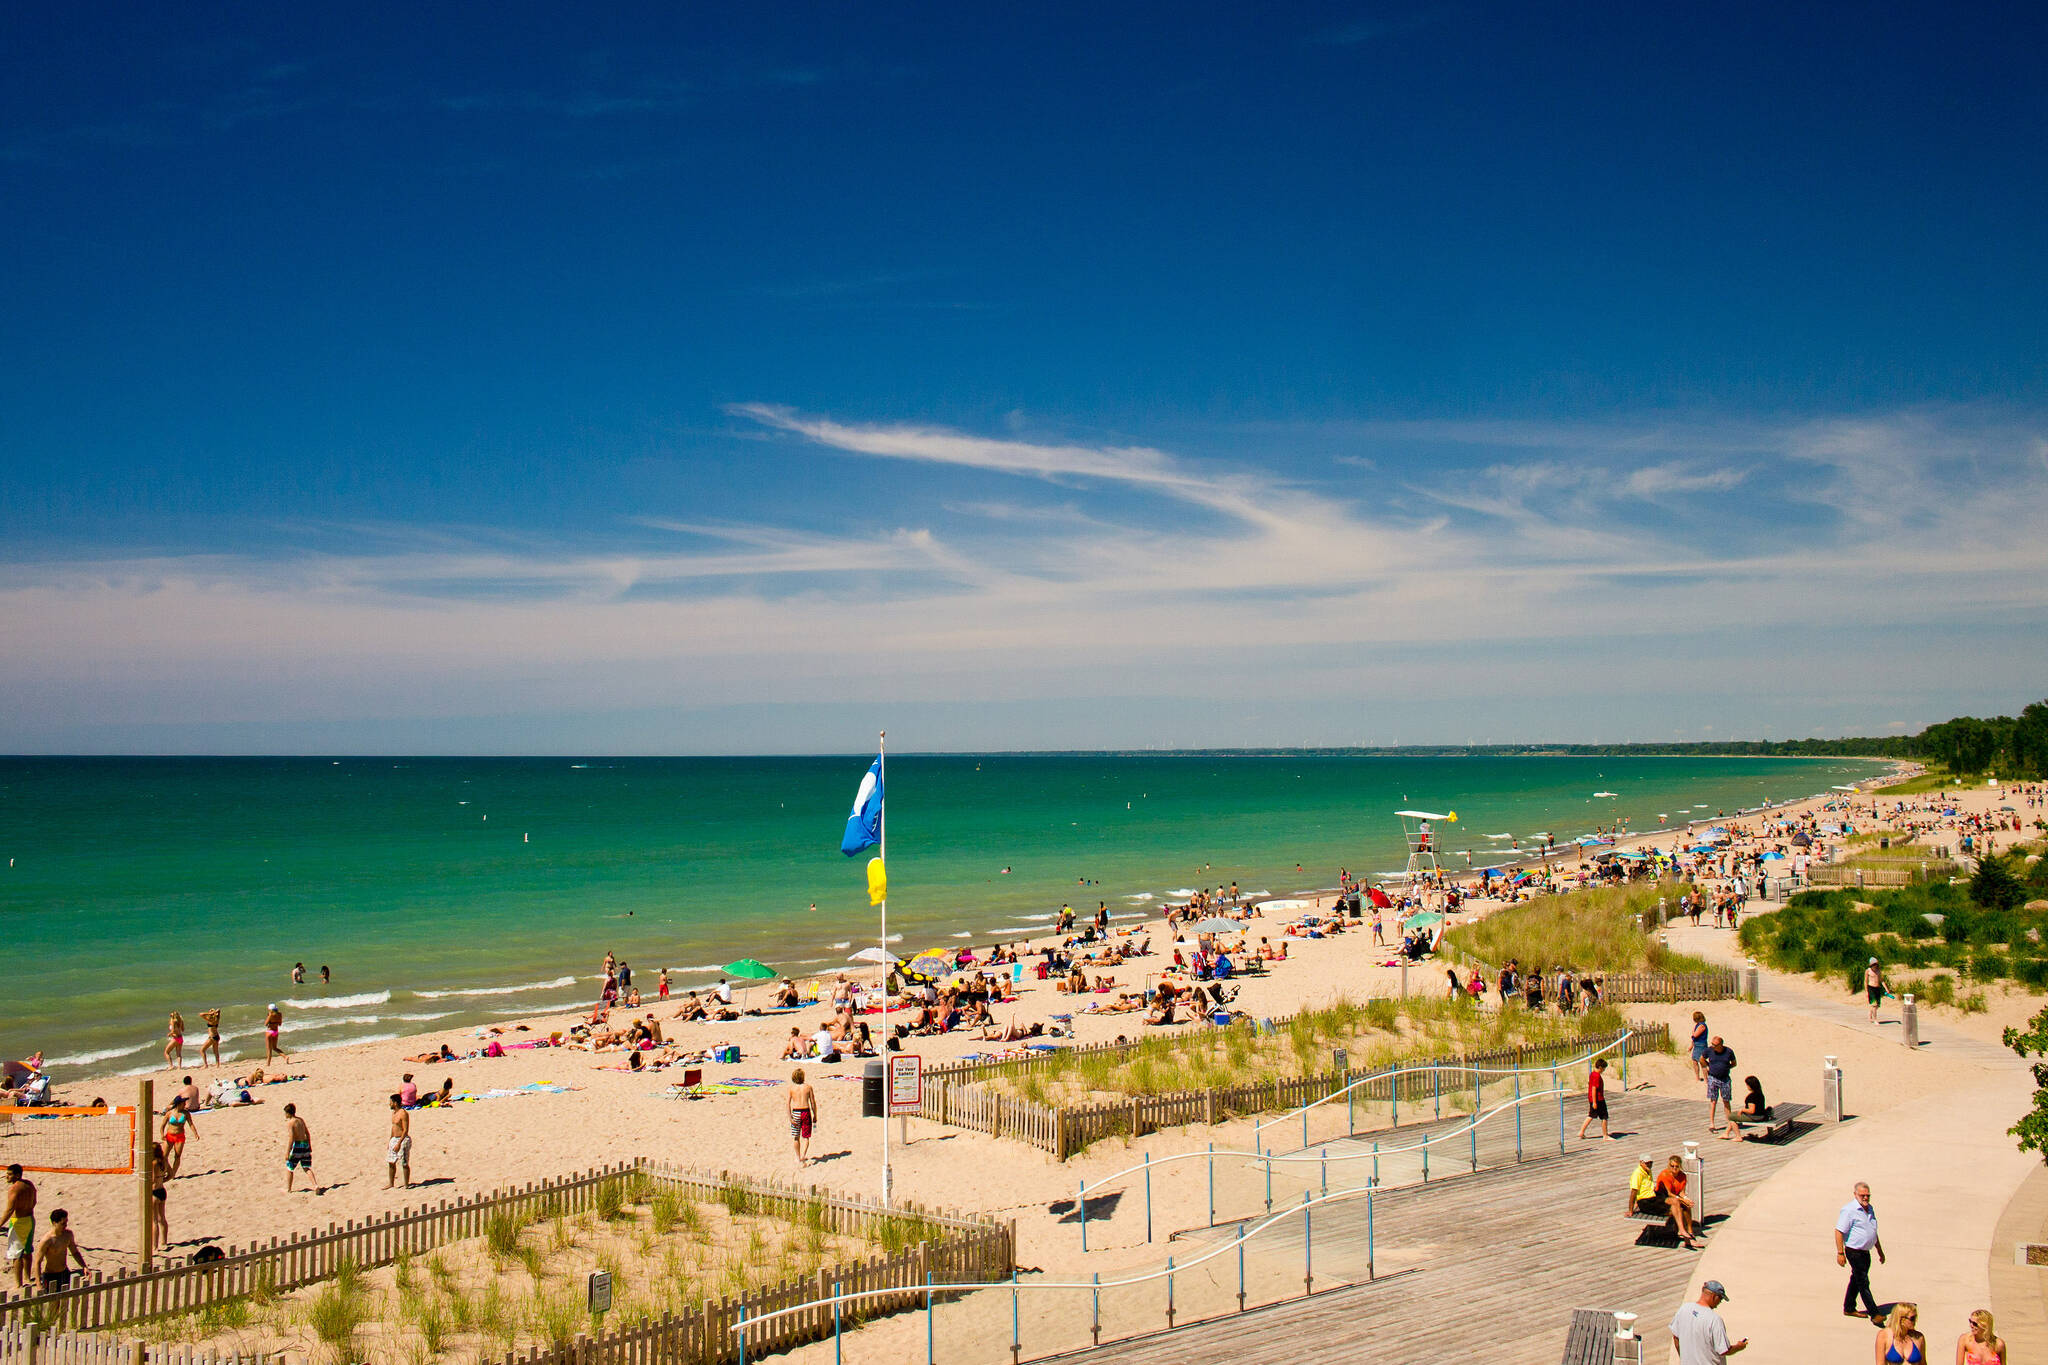 Wasaga Beach Sports Park